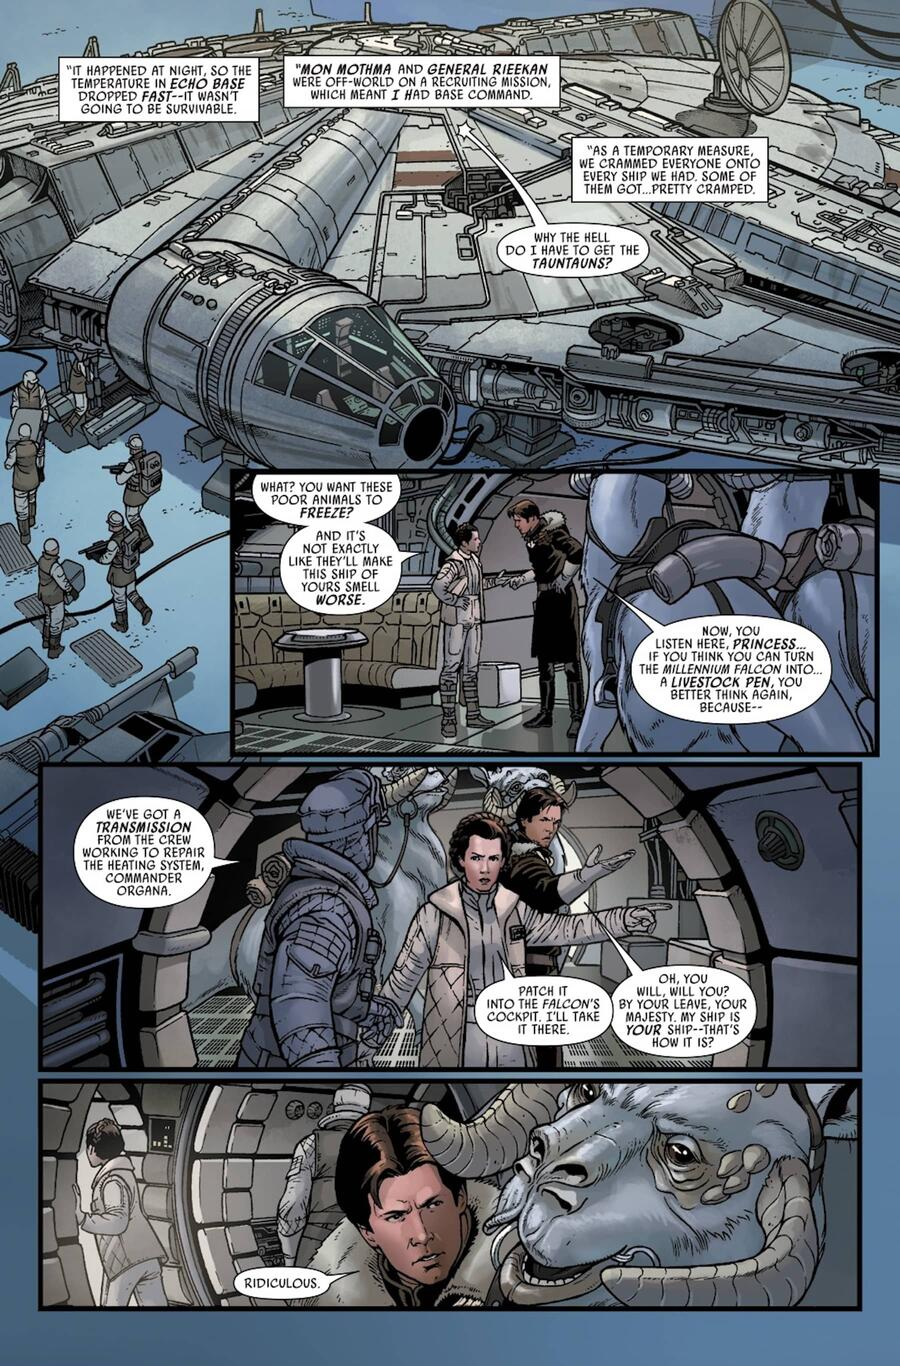 STAR WARS #12 interior art by Ramon Rosanas with colors by Rachelle Rosenberg and letters by VC's Clayton Cowles